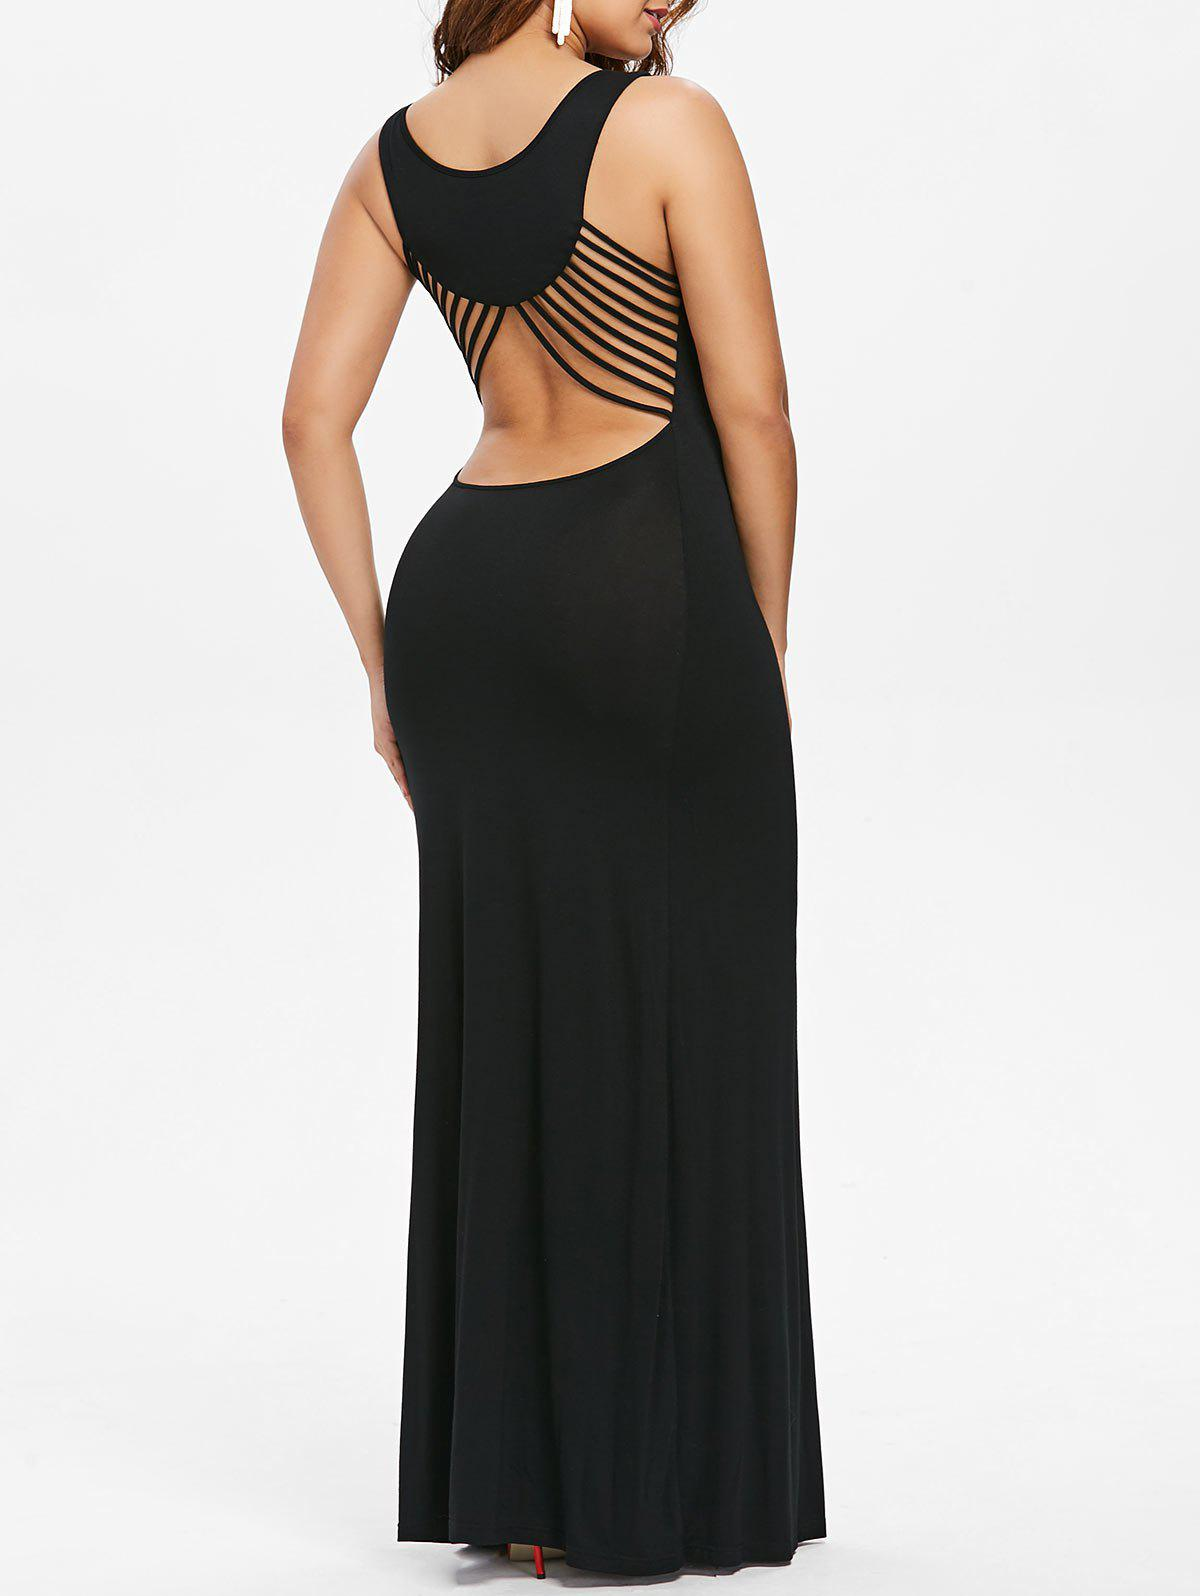 Shops Cut Out Strappy Long Party Dress